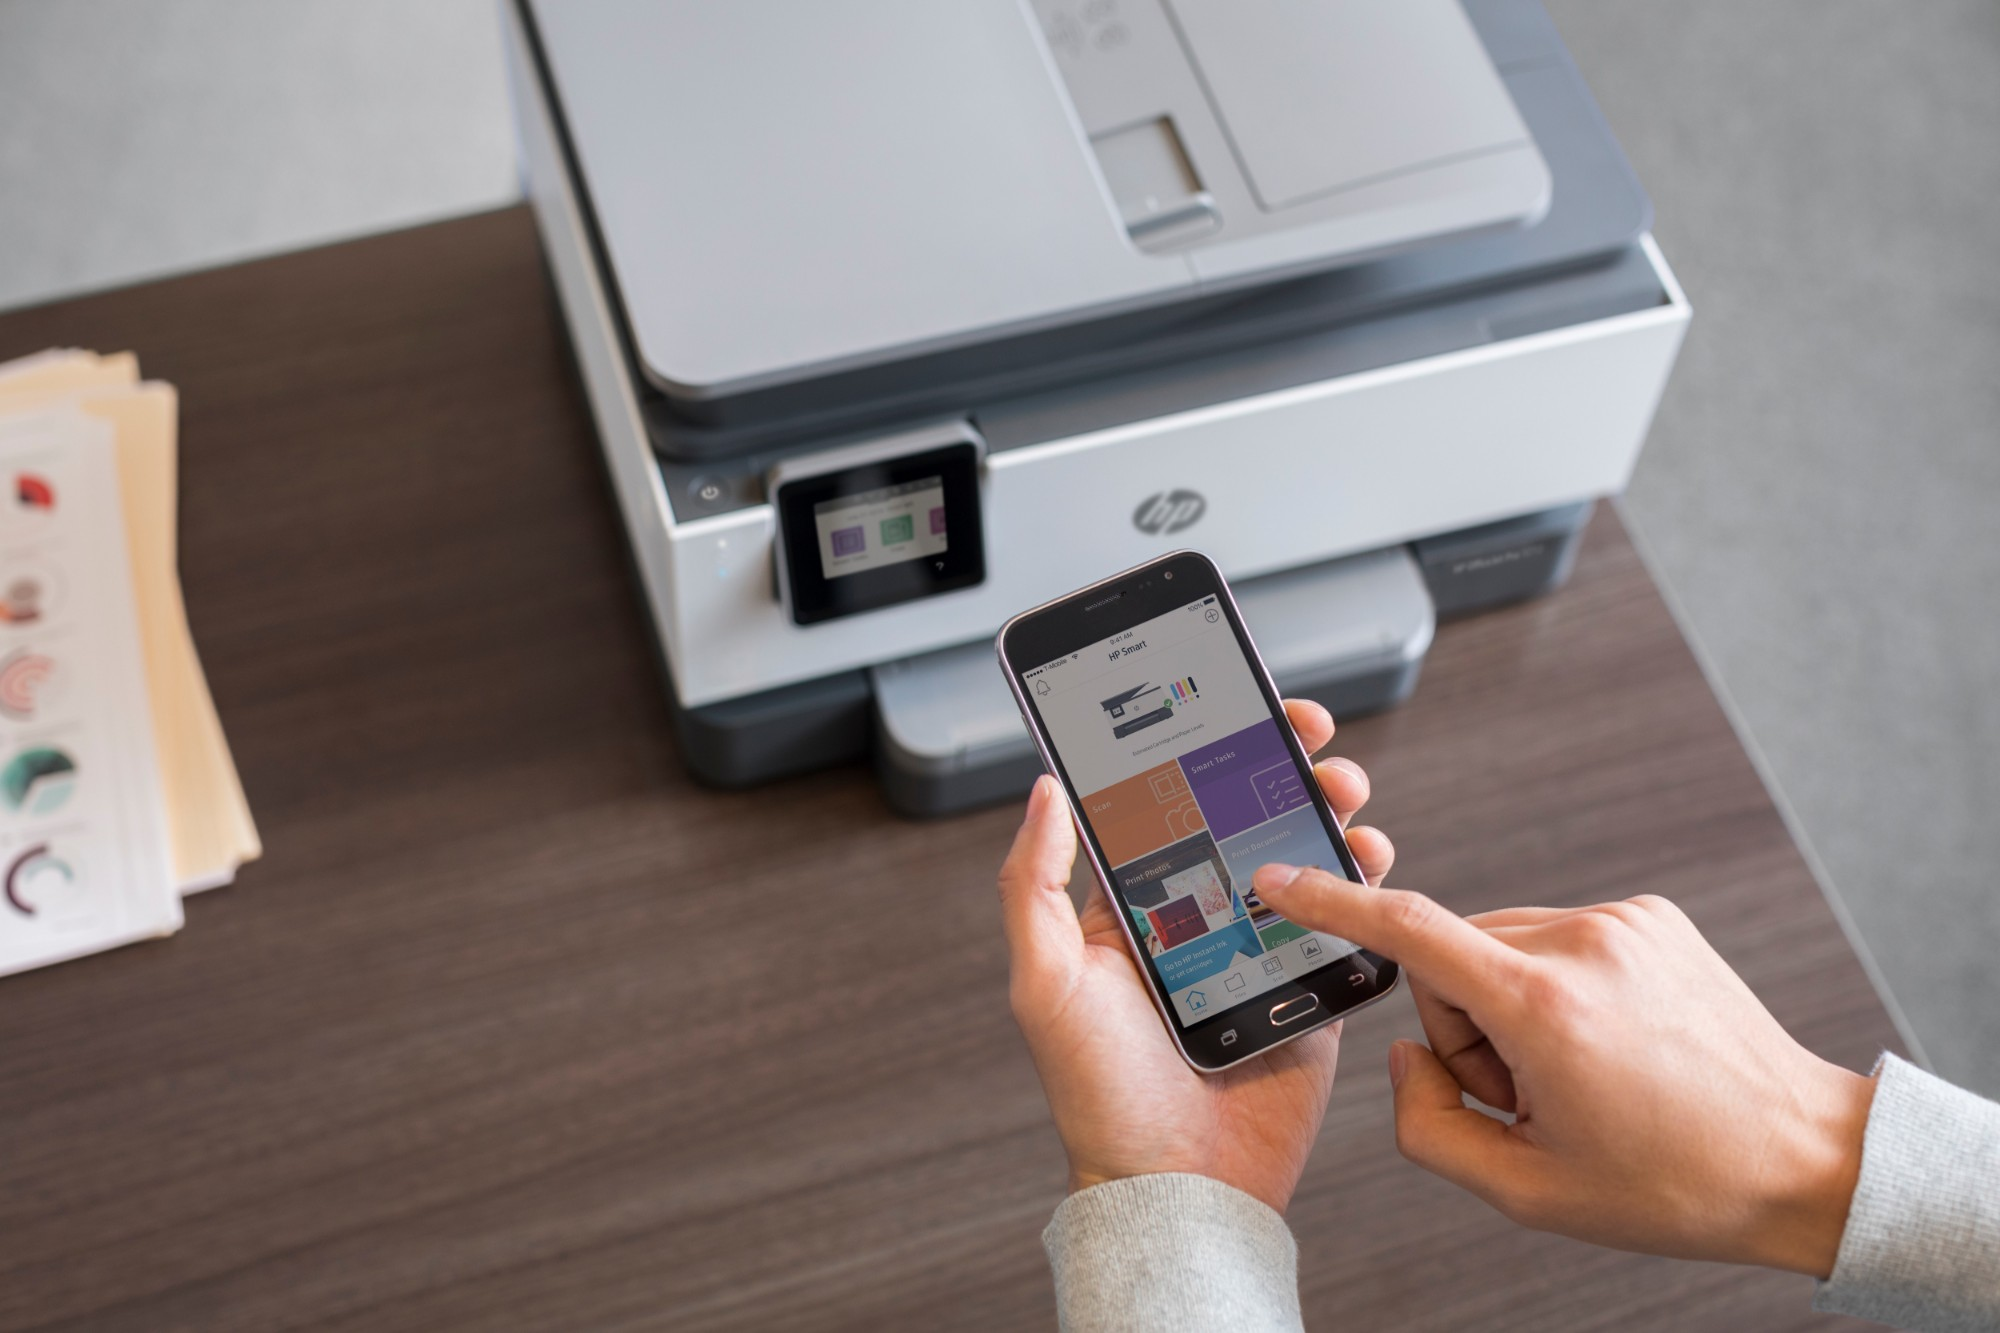 HP OfficeJet Pro 9012 All-in-one wireless printer Print,Scan,Copy from your  phone, Instant Ink ready & voice activated (works with Alexa and Google